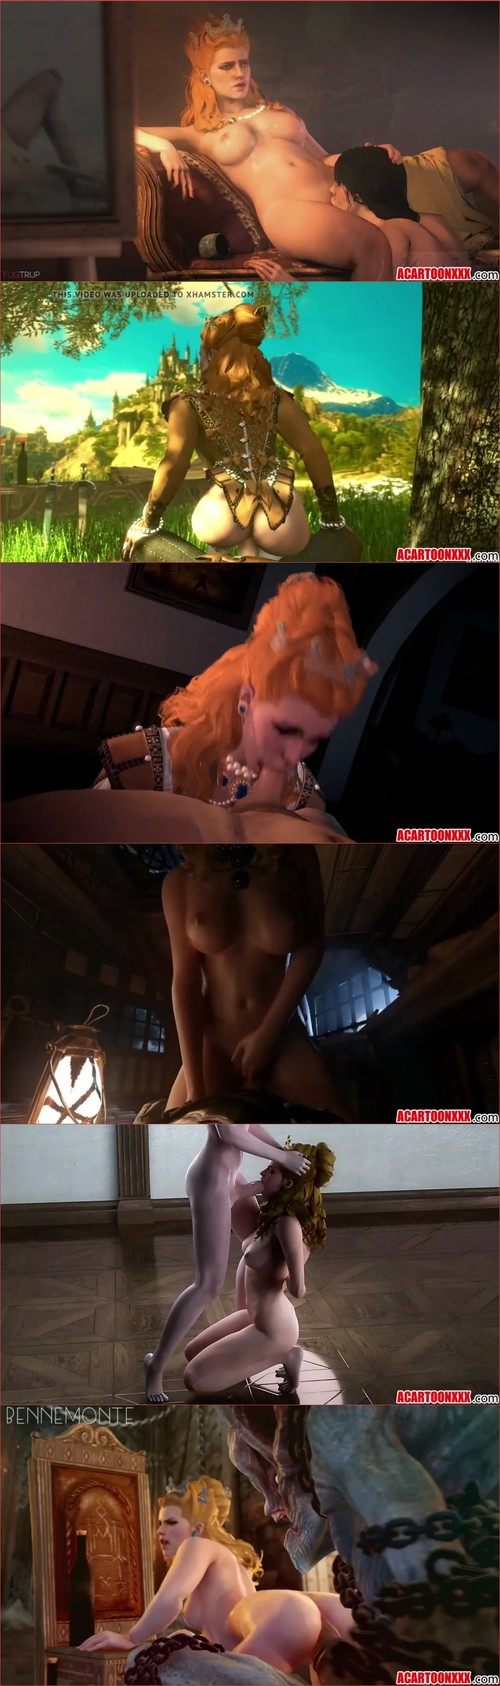 anna henrietta sex compliation for you